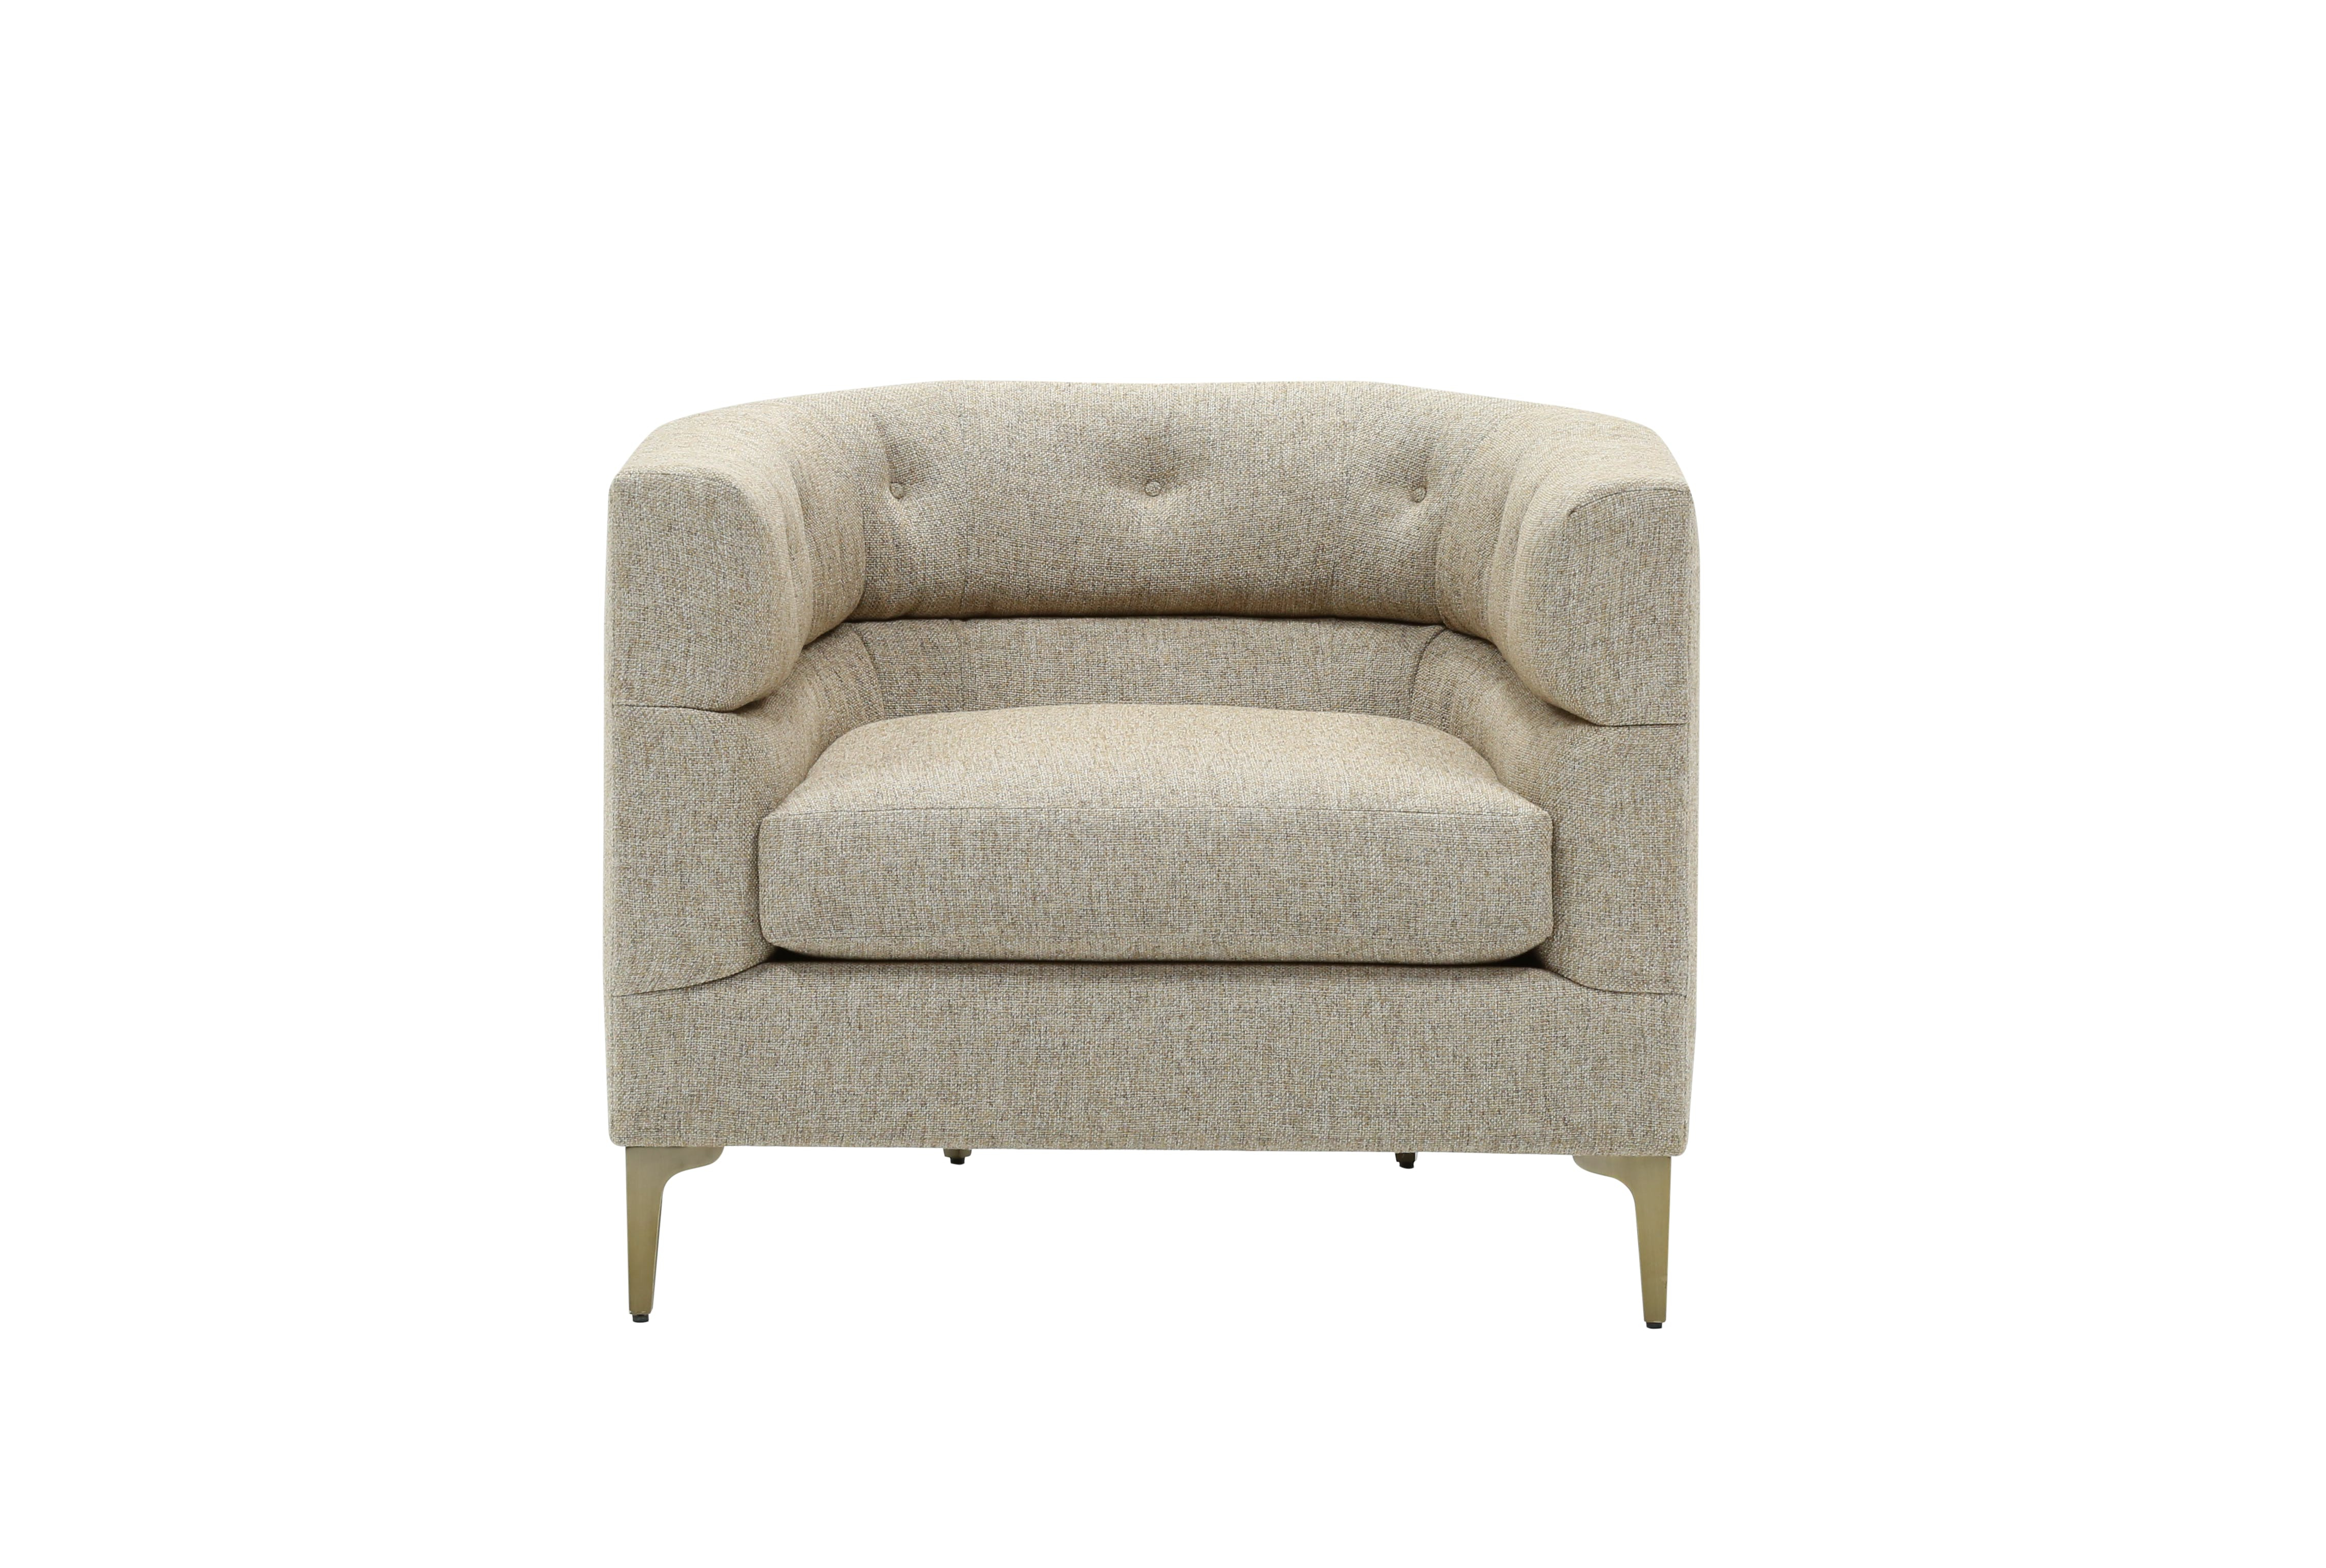 Nate Berkus Just Launched A Home Collection With Hubby Jeremiah Inside Liv Arm Sofa Chairs By Nate Berkus And Jeremiah Brent (View 3 of 20)